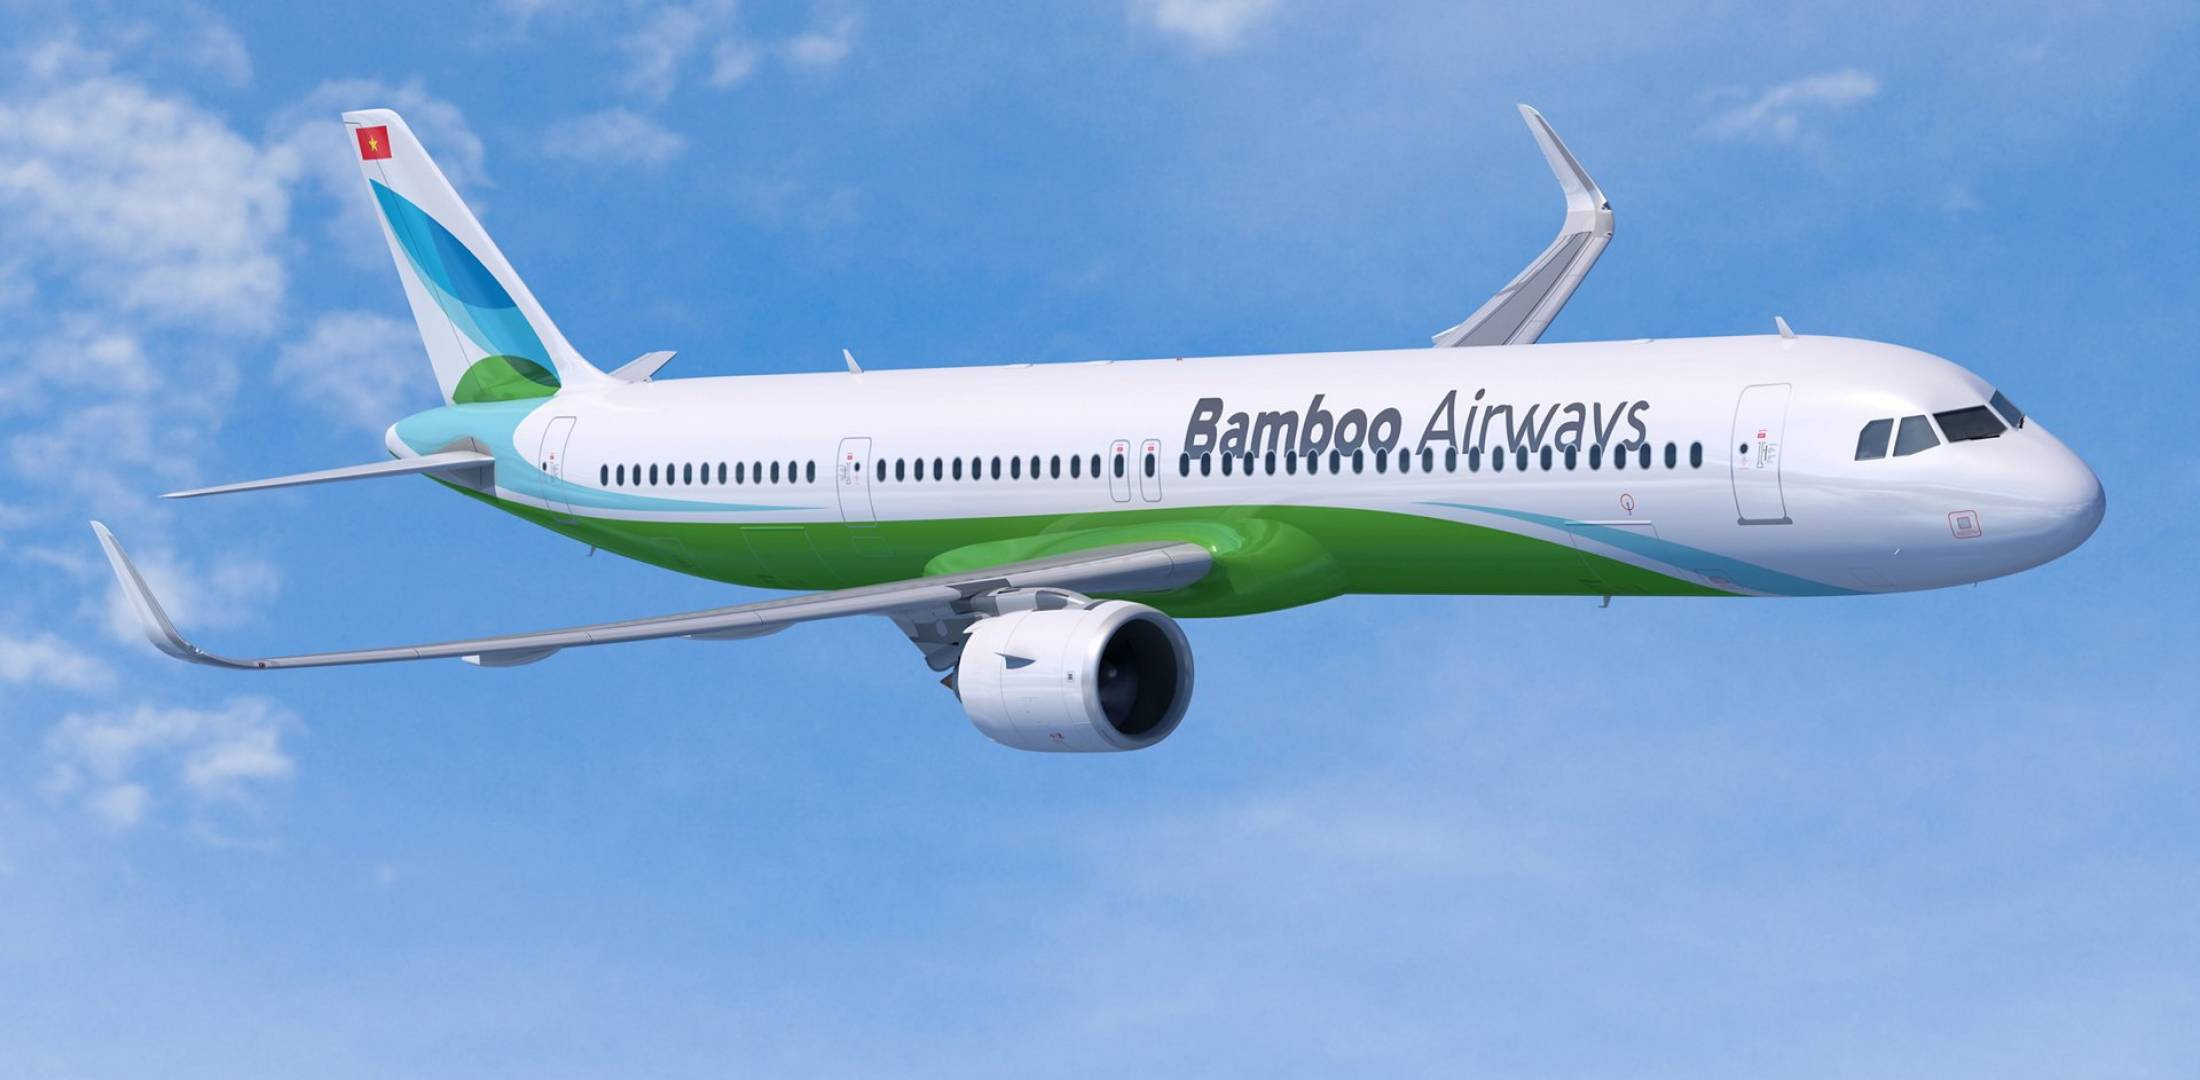 To Vietnam Crowded Set Airways Join MarketAir Bamboo Airline eW9YbEDH2I